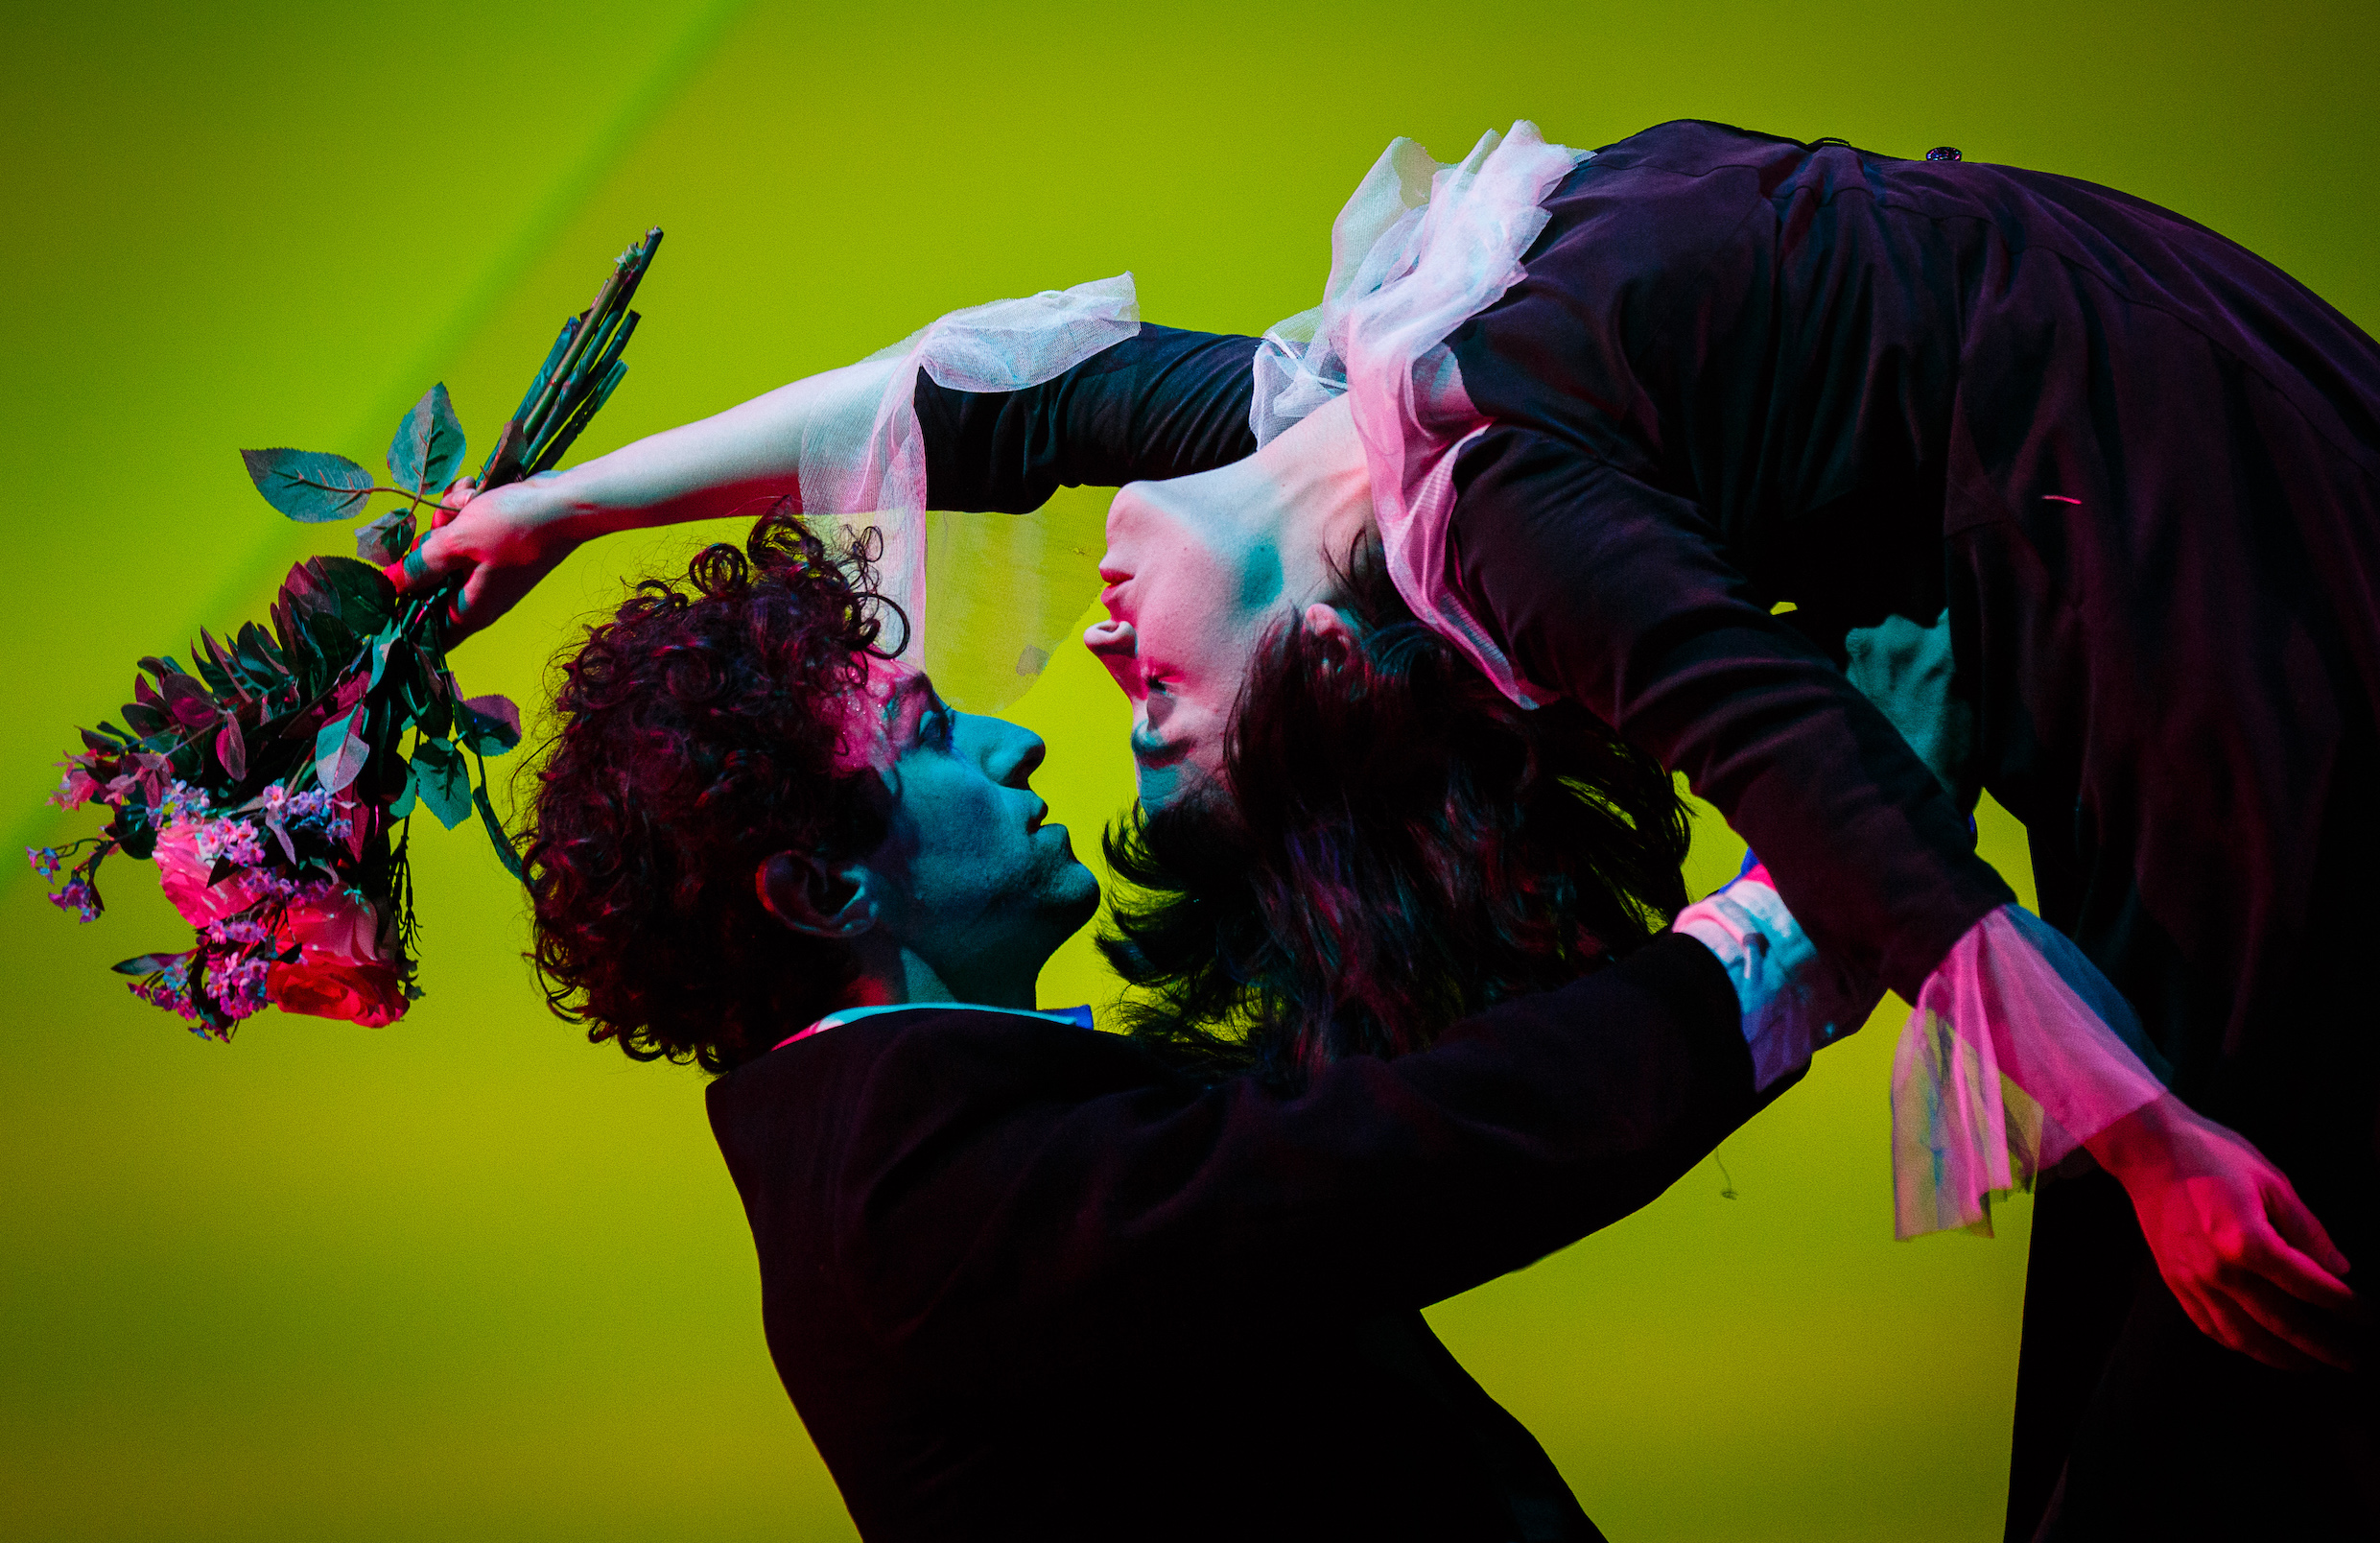 Kneehigh collaboration takes innovation beyond Covid